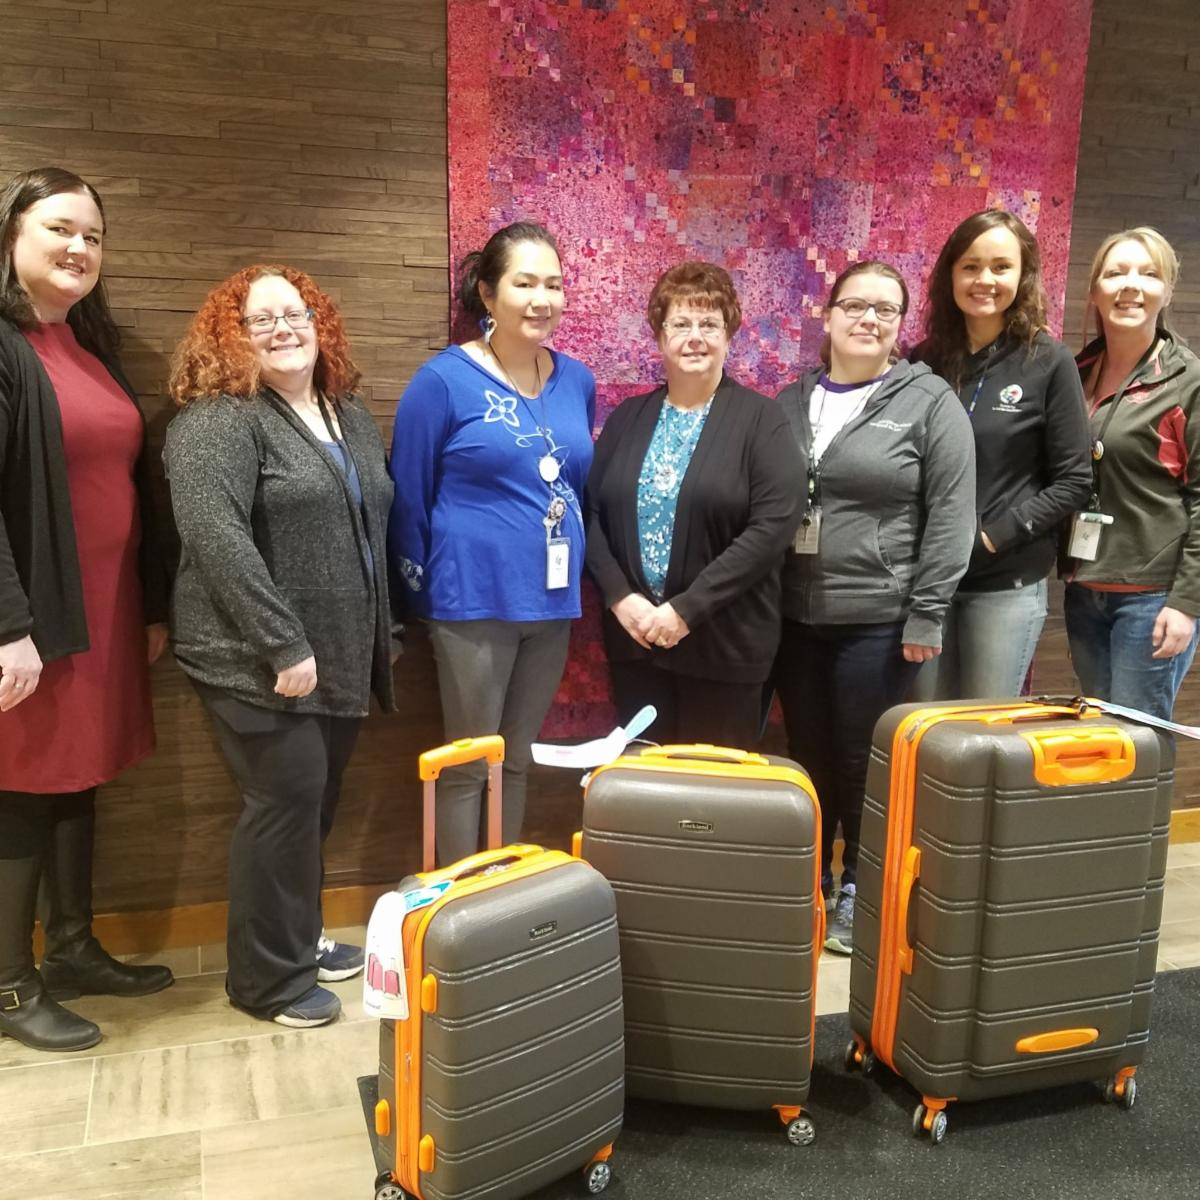 PHoto of NCU staff standing with FDL foster care workers with 3 pieces of luggage, donated by NCU